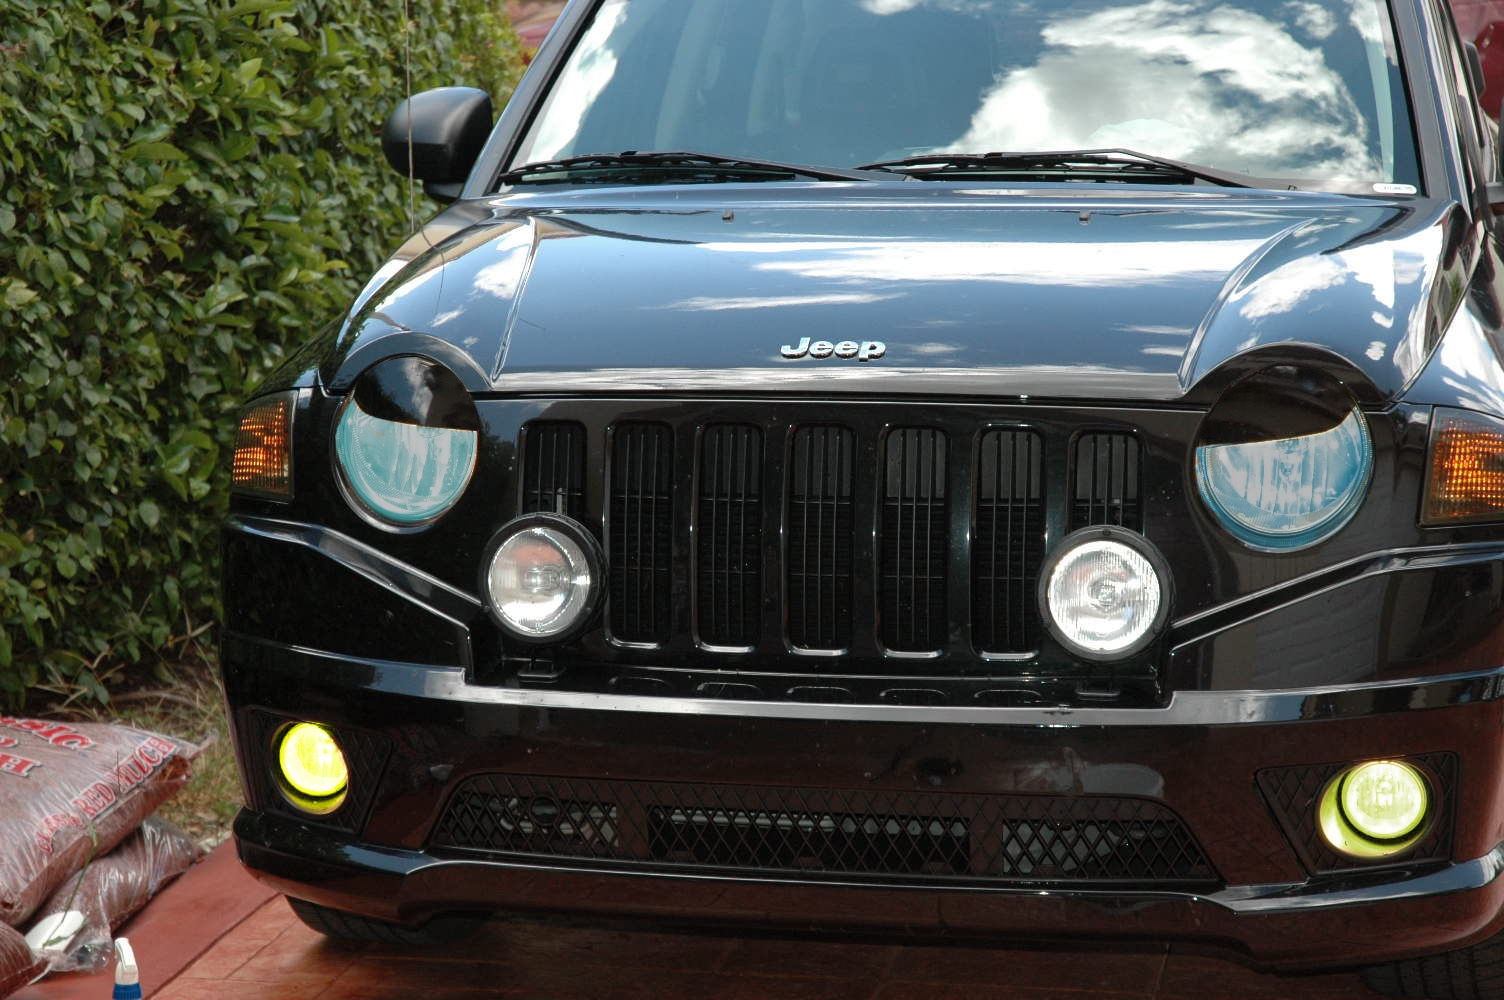 kev_104 2008 jeep compass specs, photos, modification info at